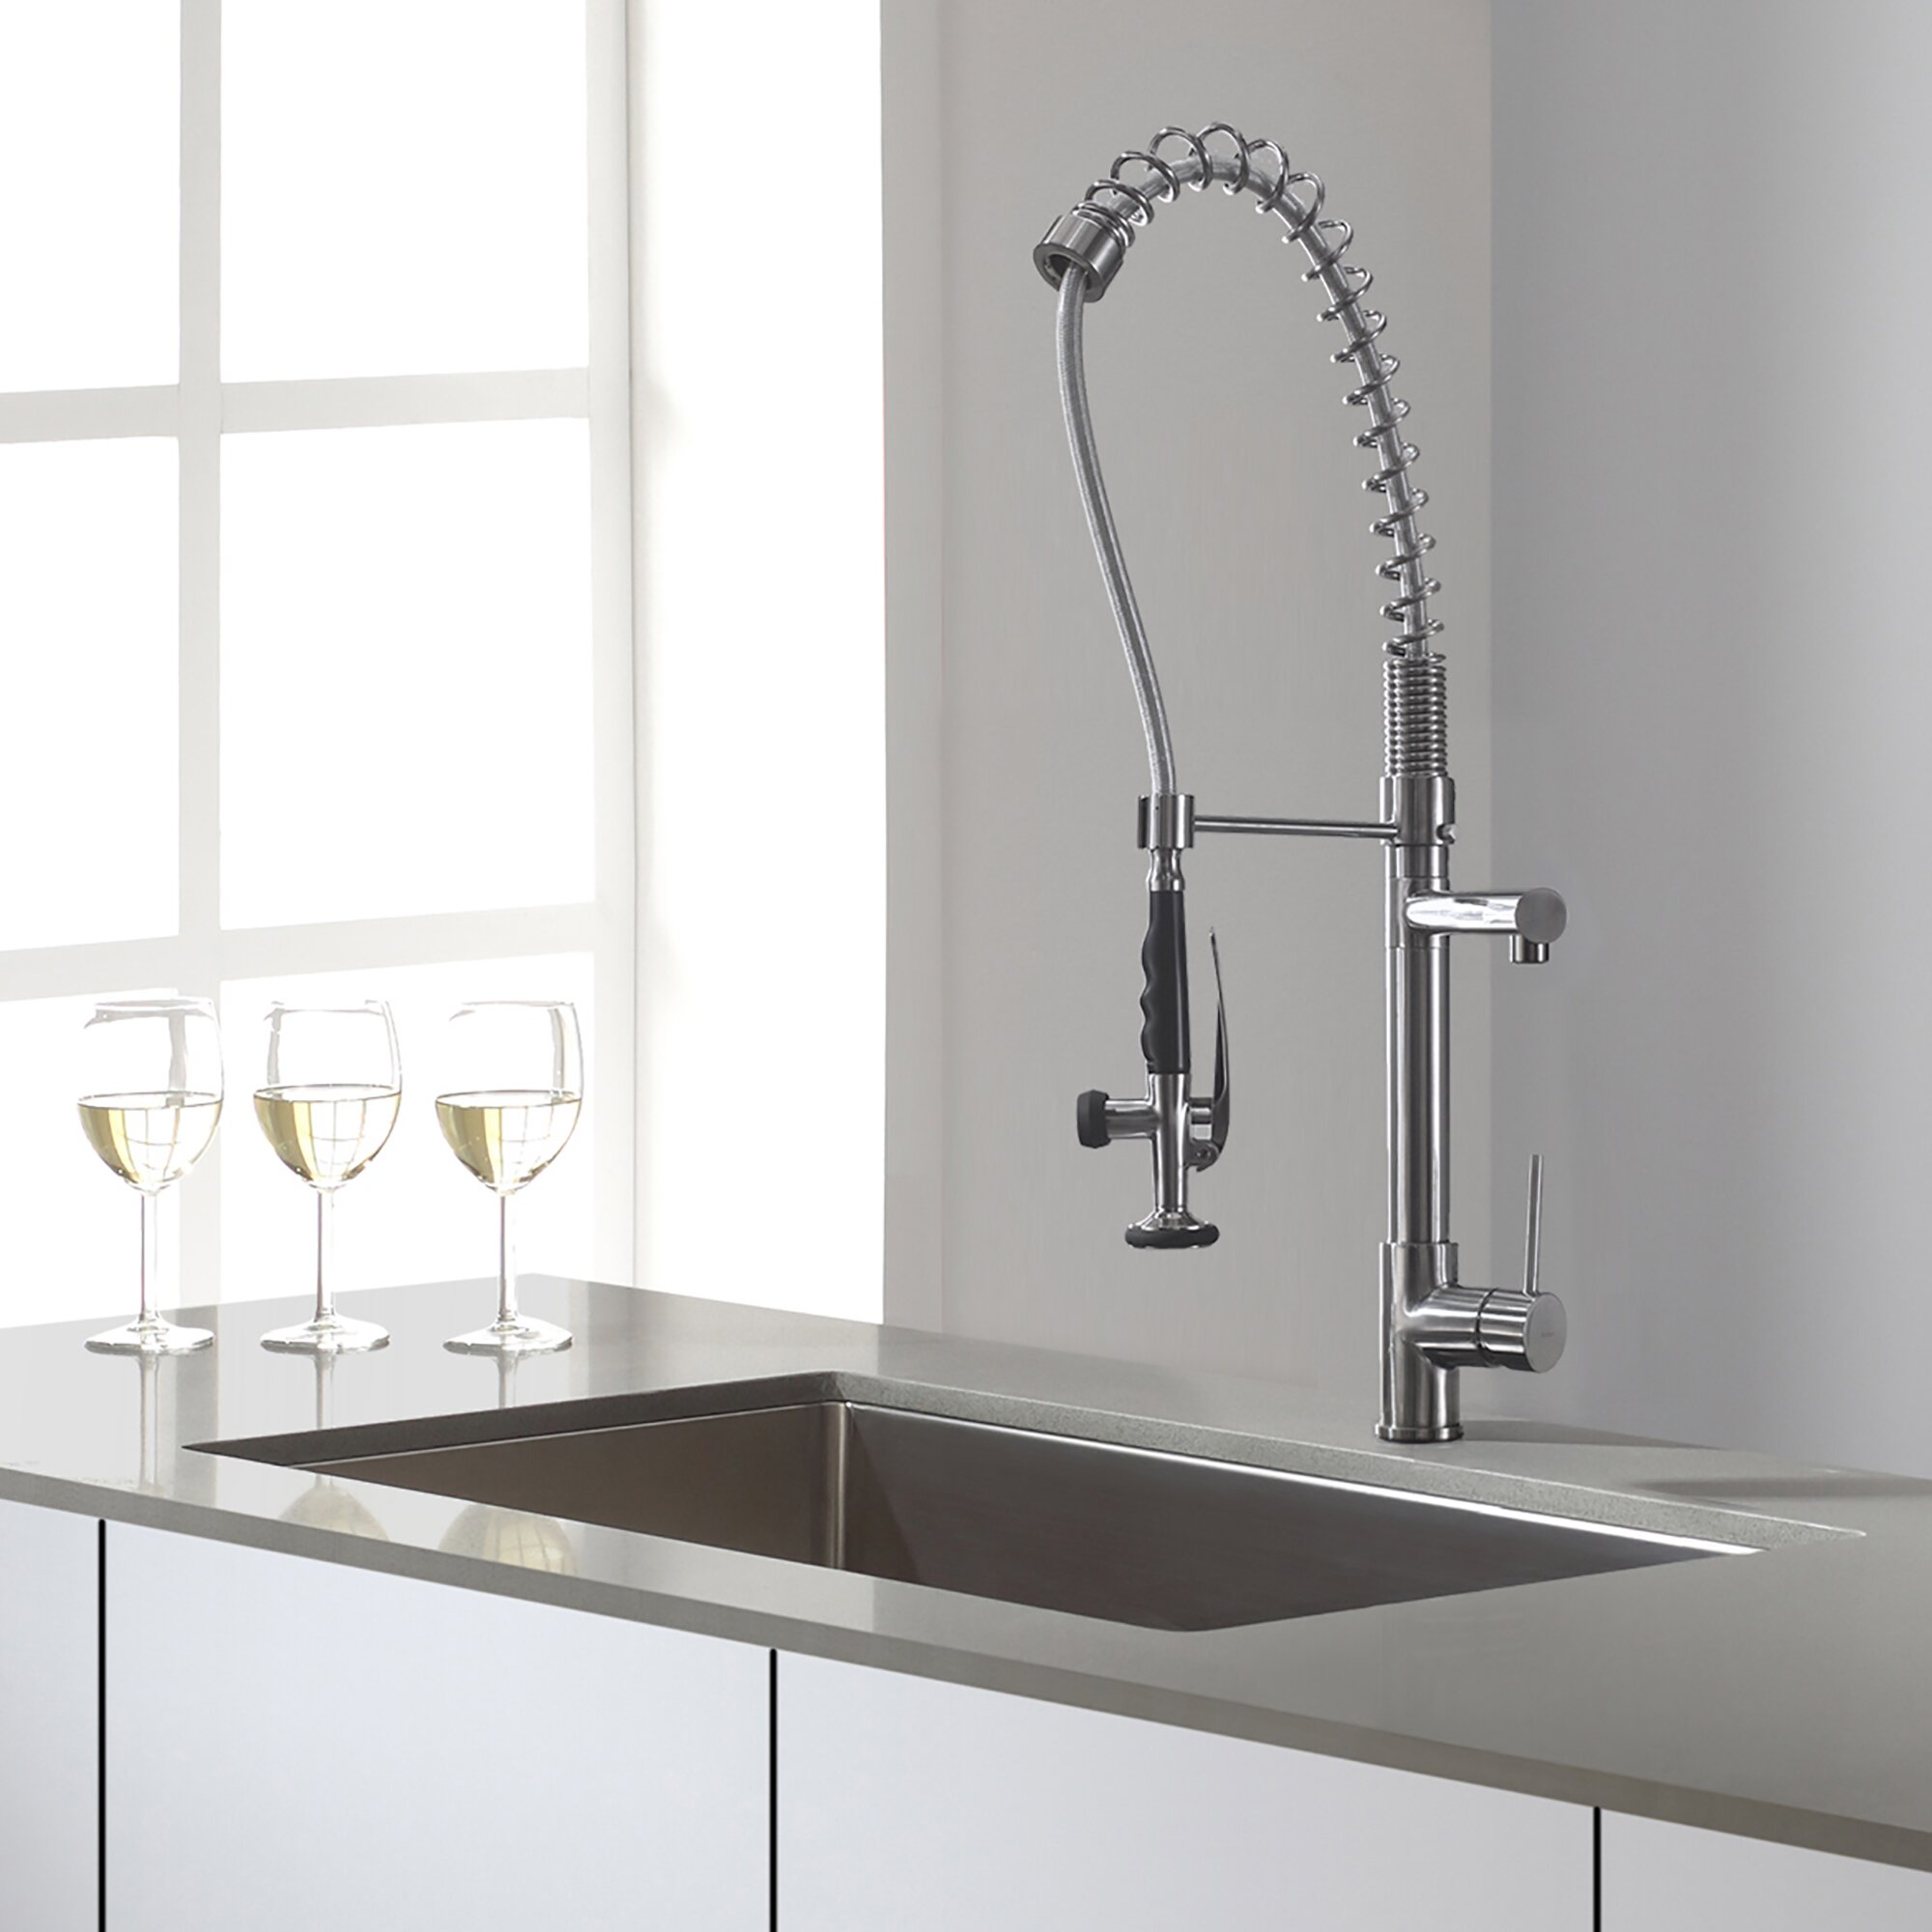 Kraus Pull Out Kitchen Mixer Deck Mounted Single Handle Faucet Reviews Wayfair